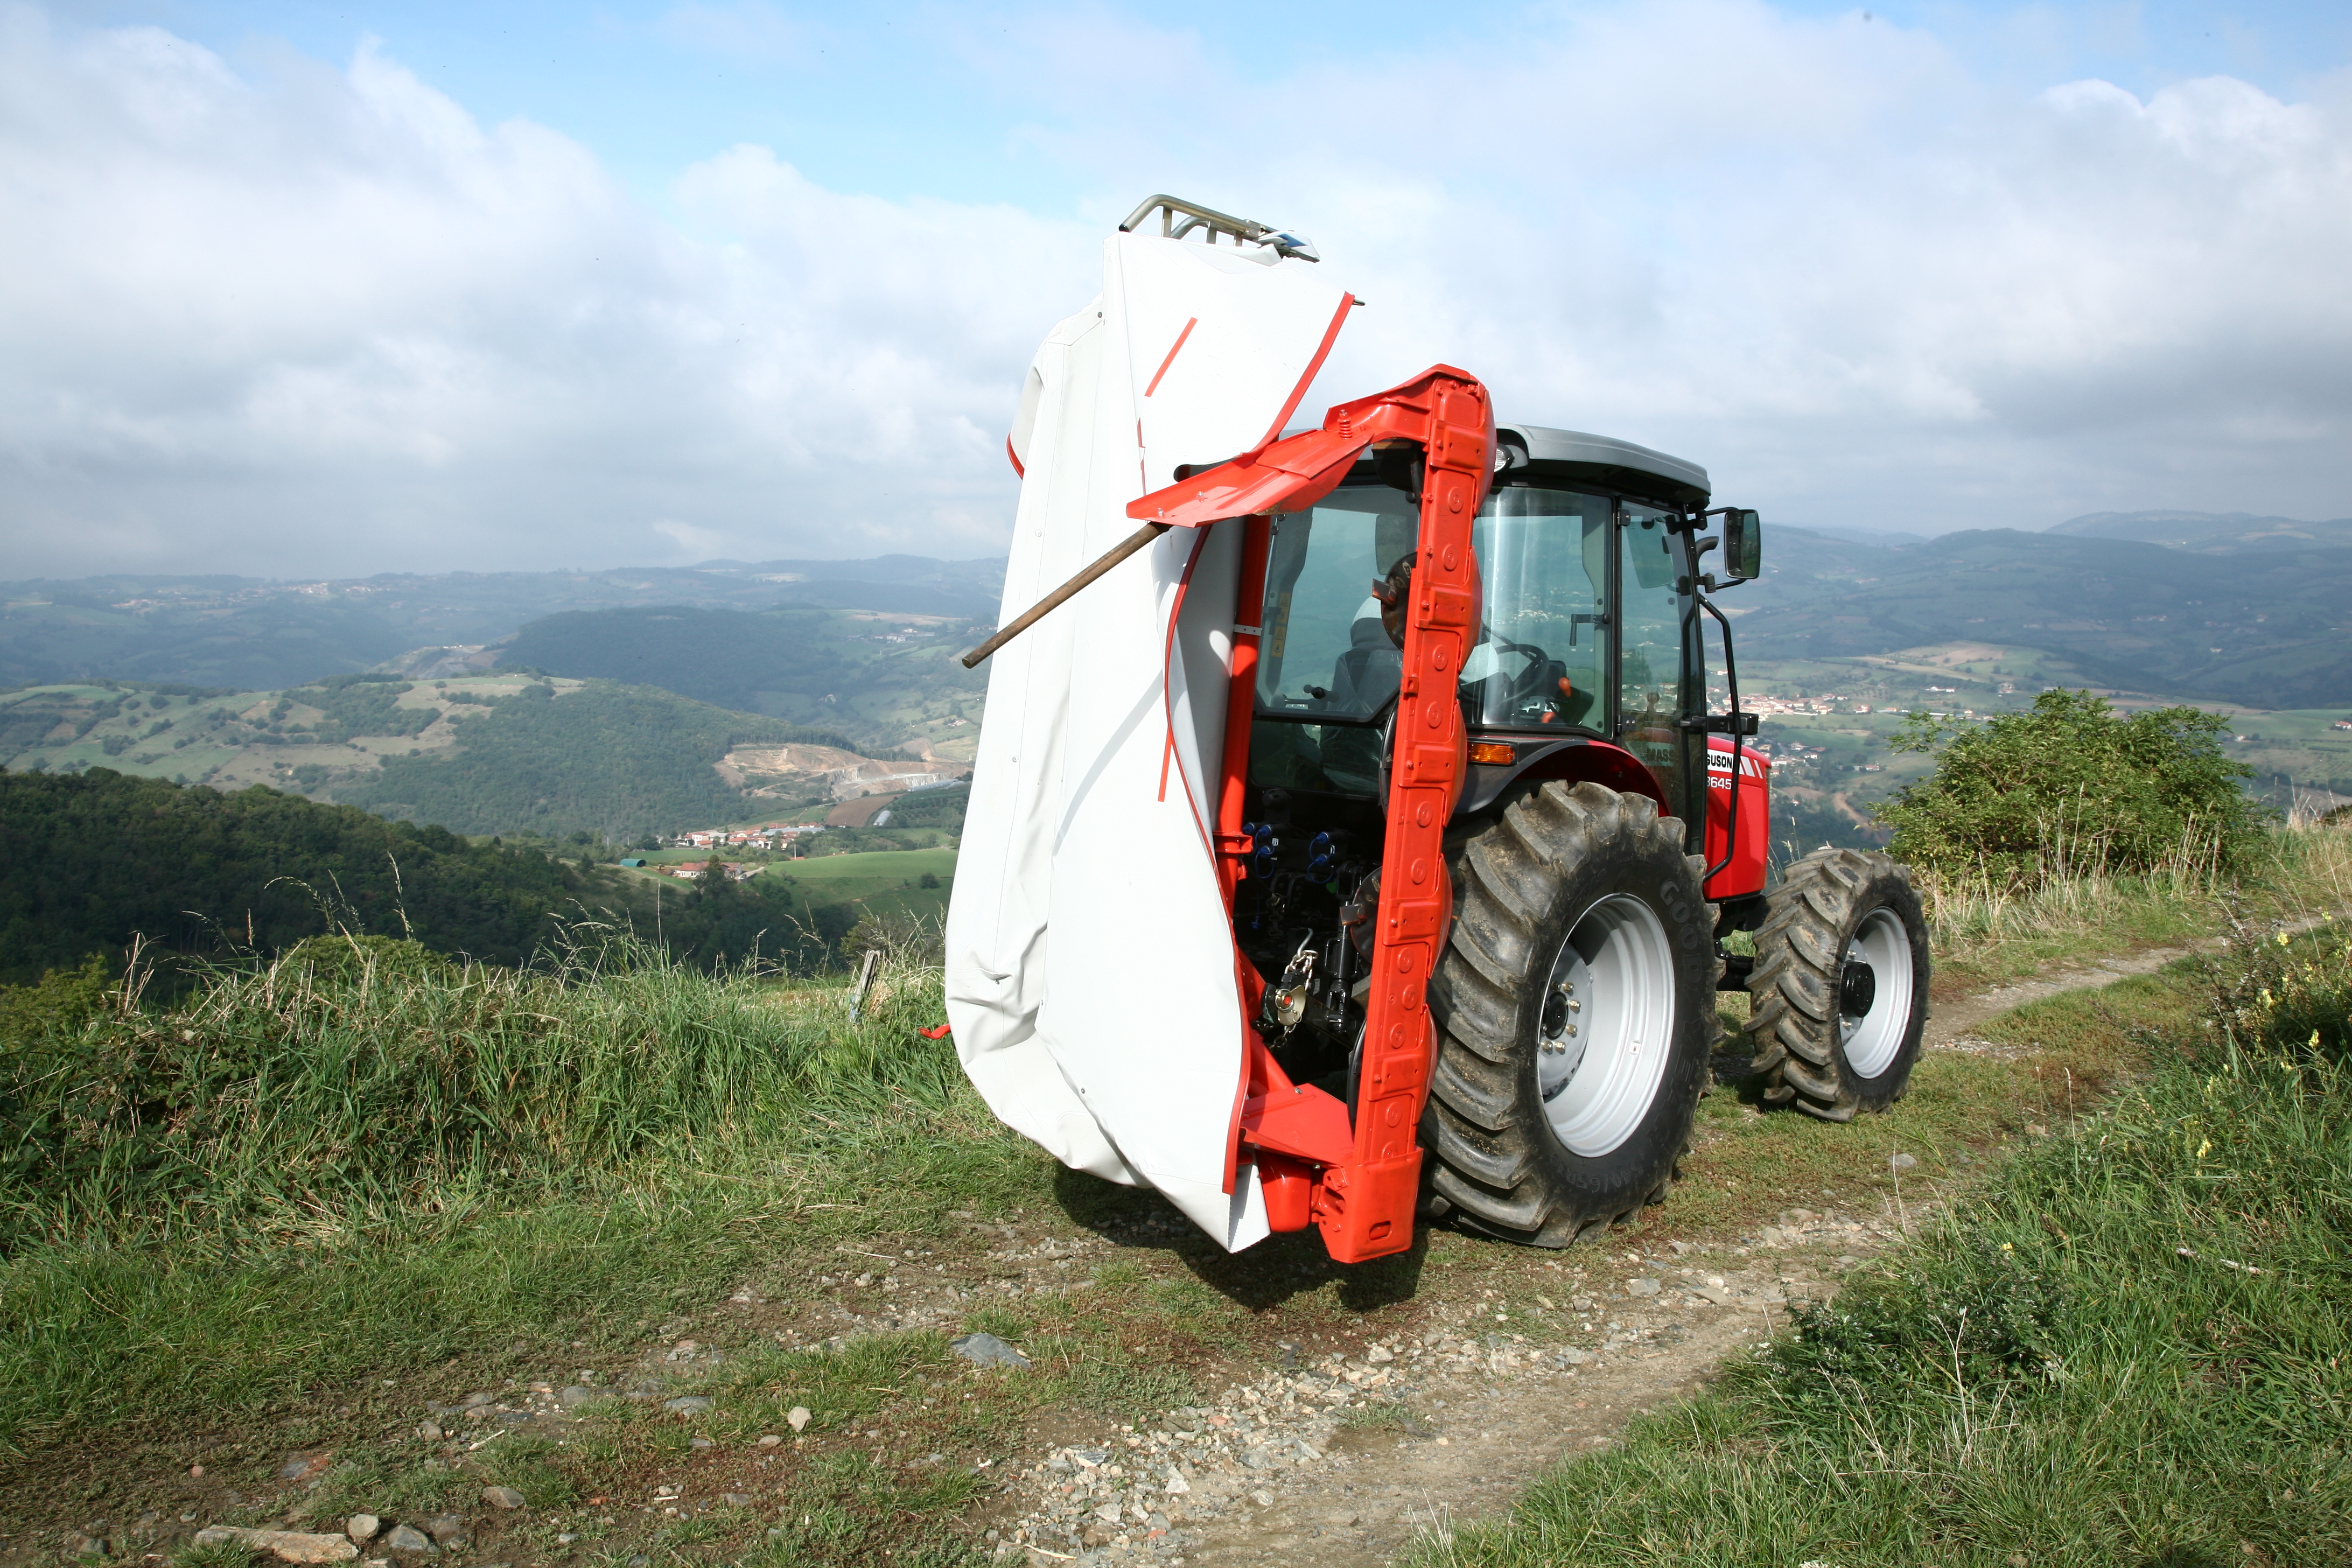 Working width: 2m – Swath width: 1,4m – Required power : 25kW – Capacity up  to approx.: 1,5-2ha/h – Attachment: DP – Weight: 0.405t. Kuhn